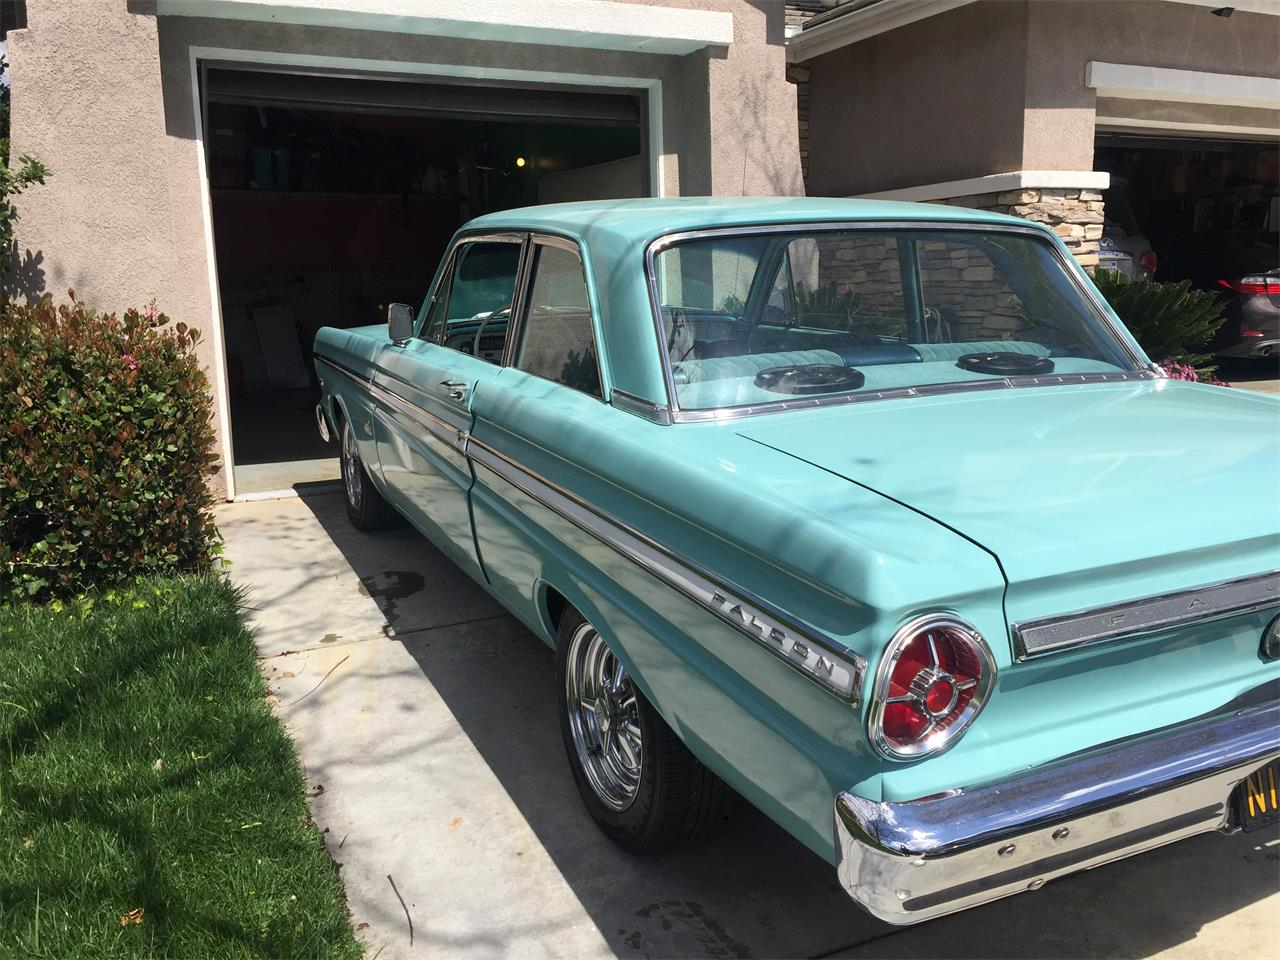 1965 Ford Falcon Futura (CC-1226918) for sale in Lake Elsinore, California